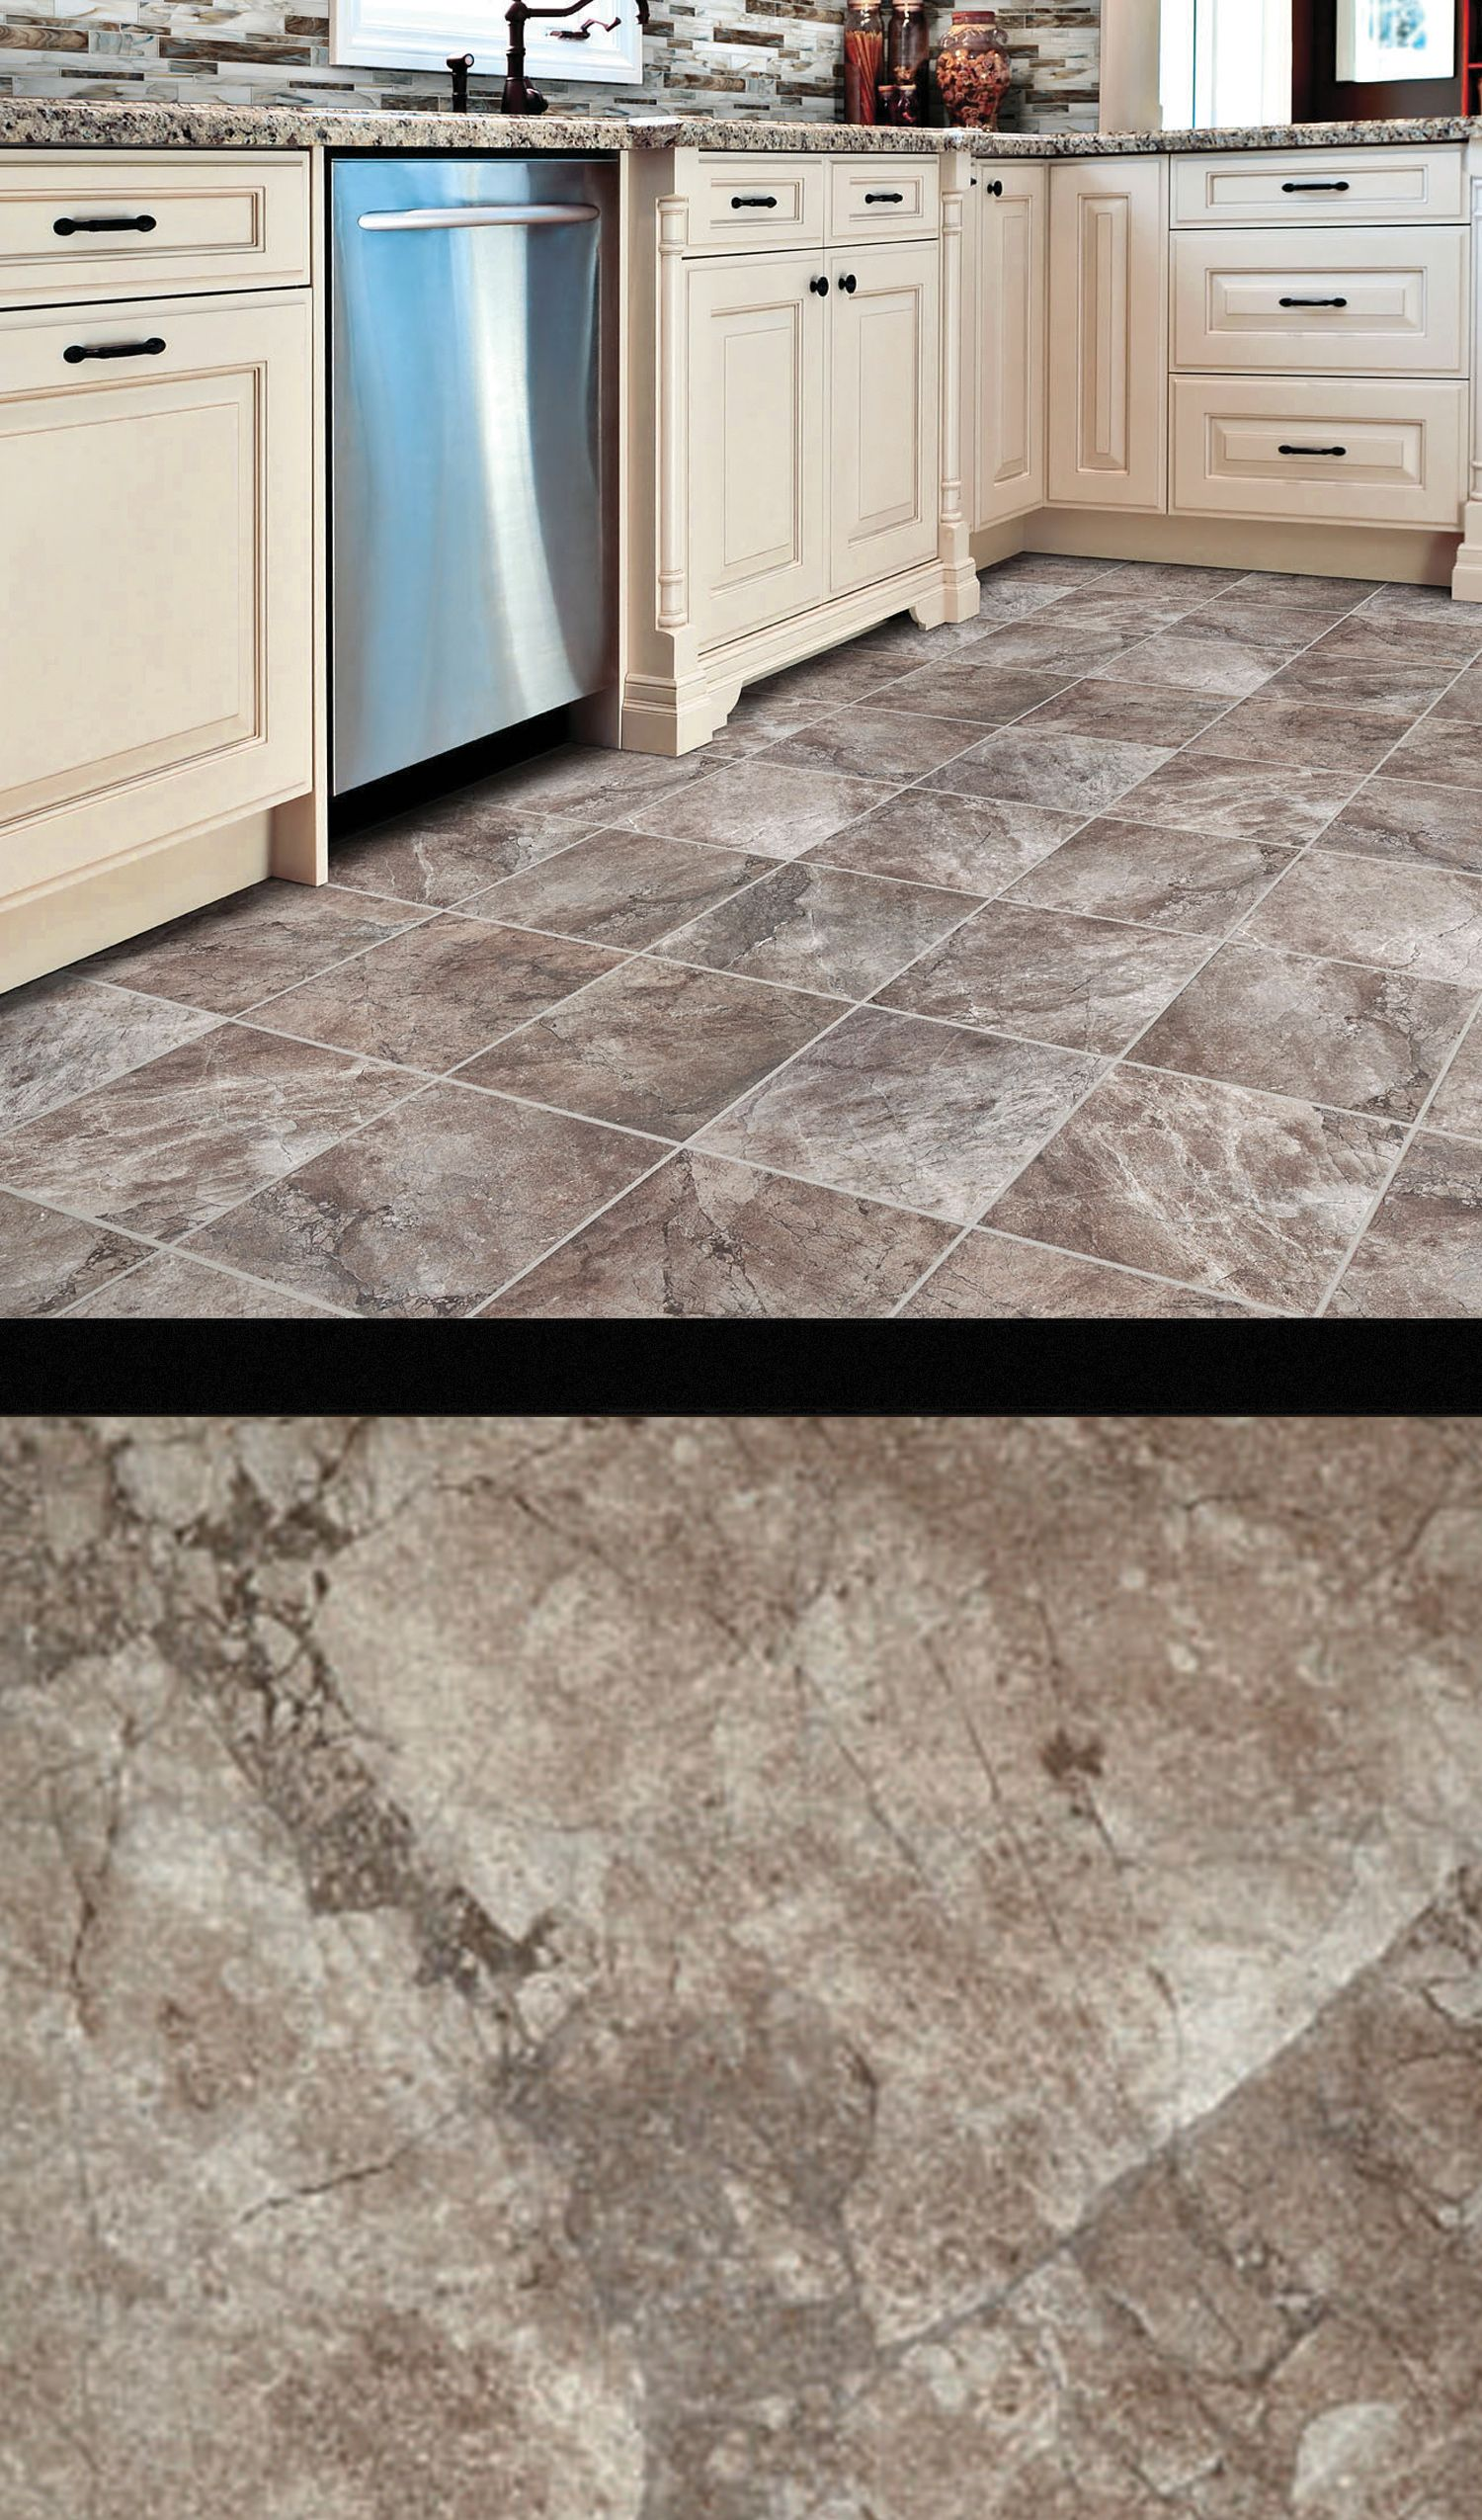 Rapture Glazed Porcelain Tile Gives Your Kitchen A Bold Marble Look While Being Durable And Easy To Clean